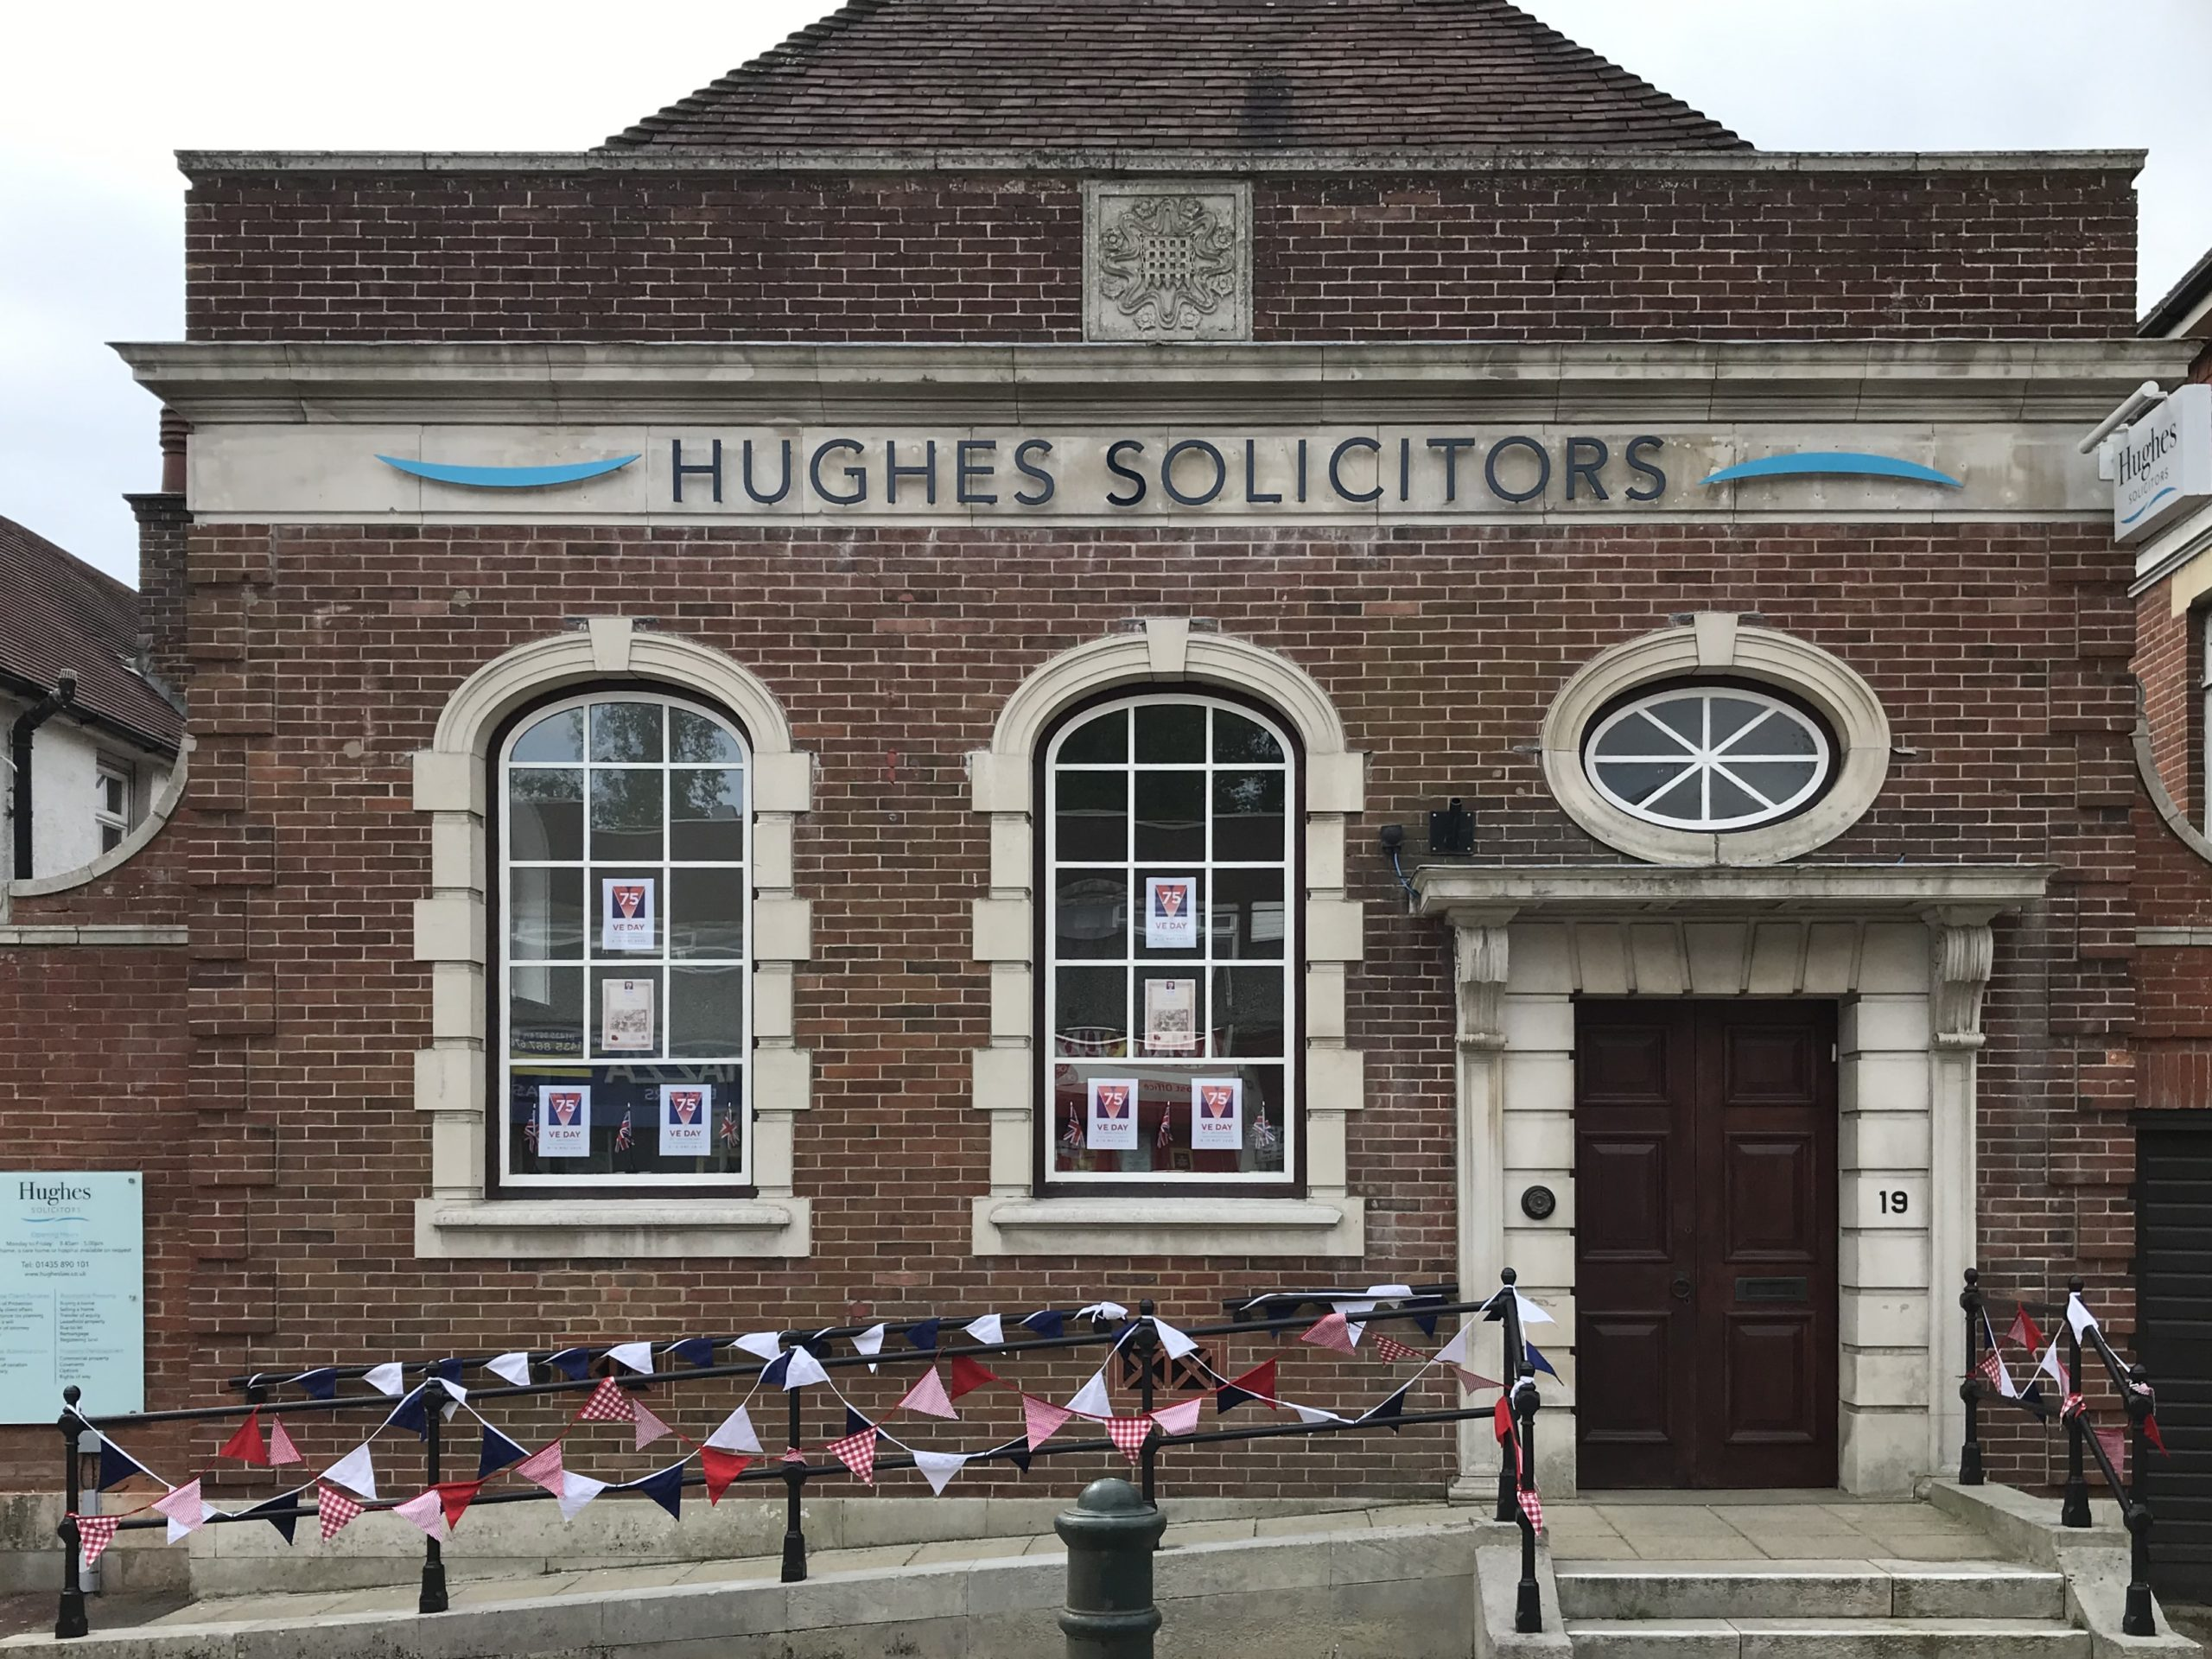 Hughes Solicitors celebrates the 75th anniversary of VE Day